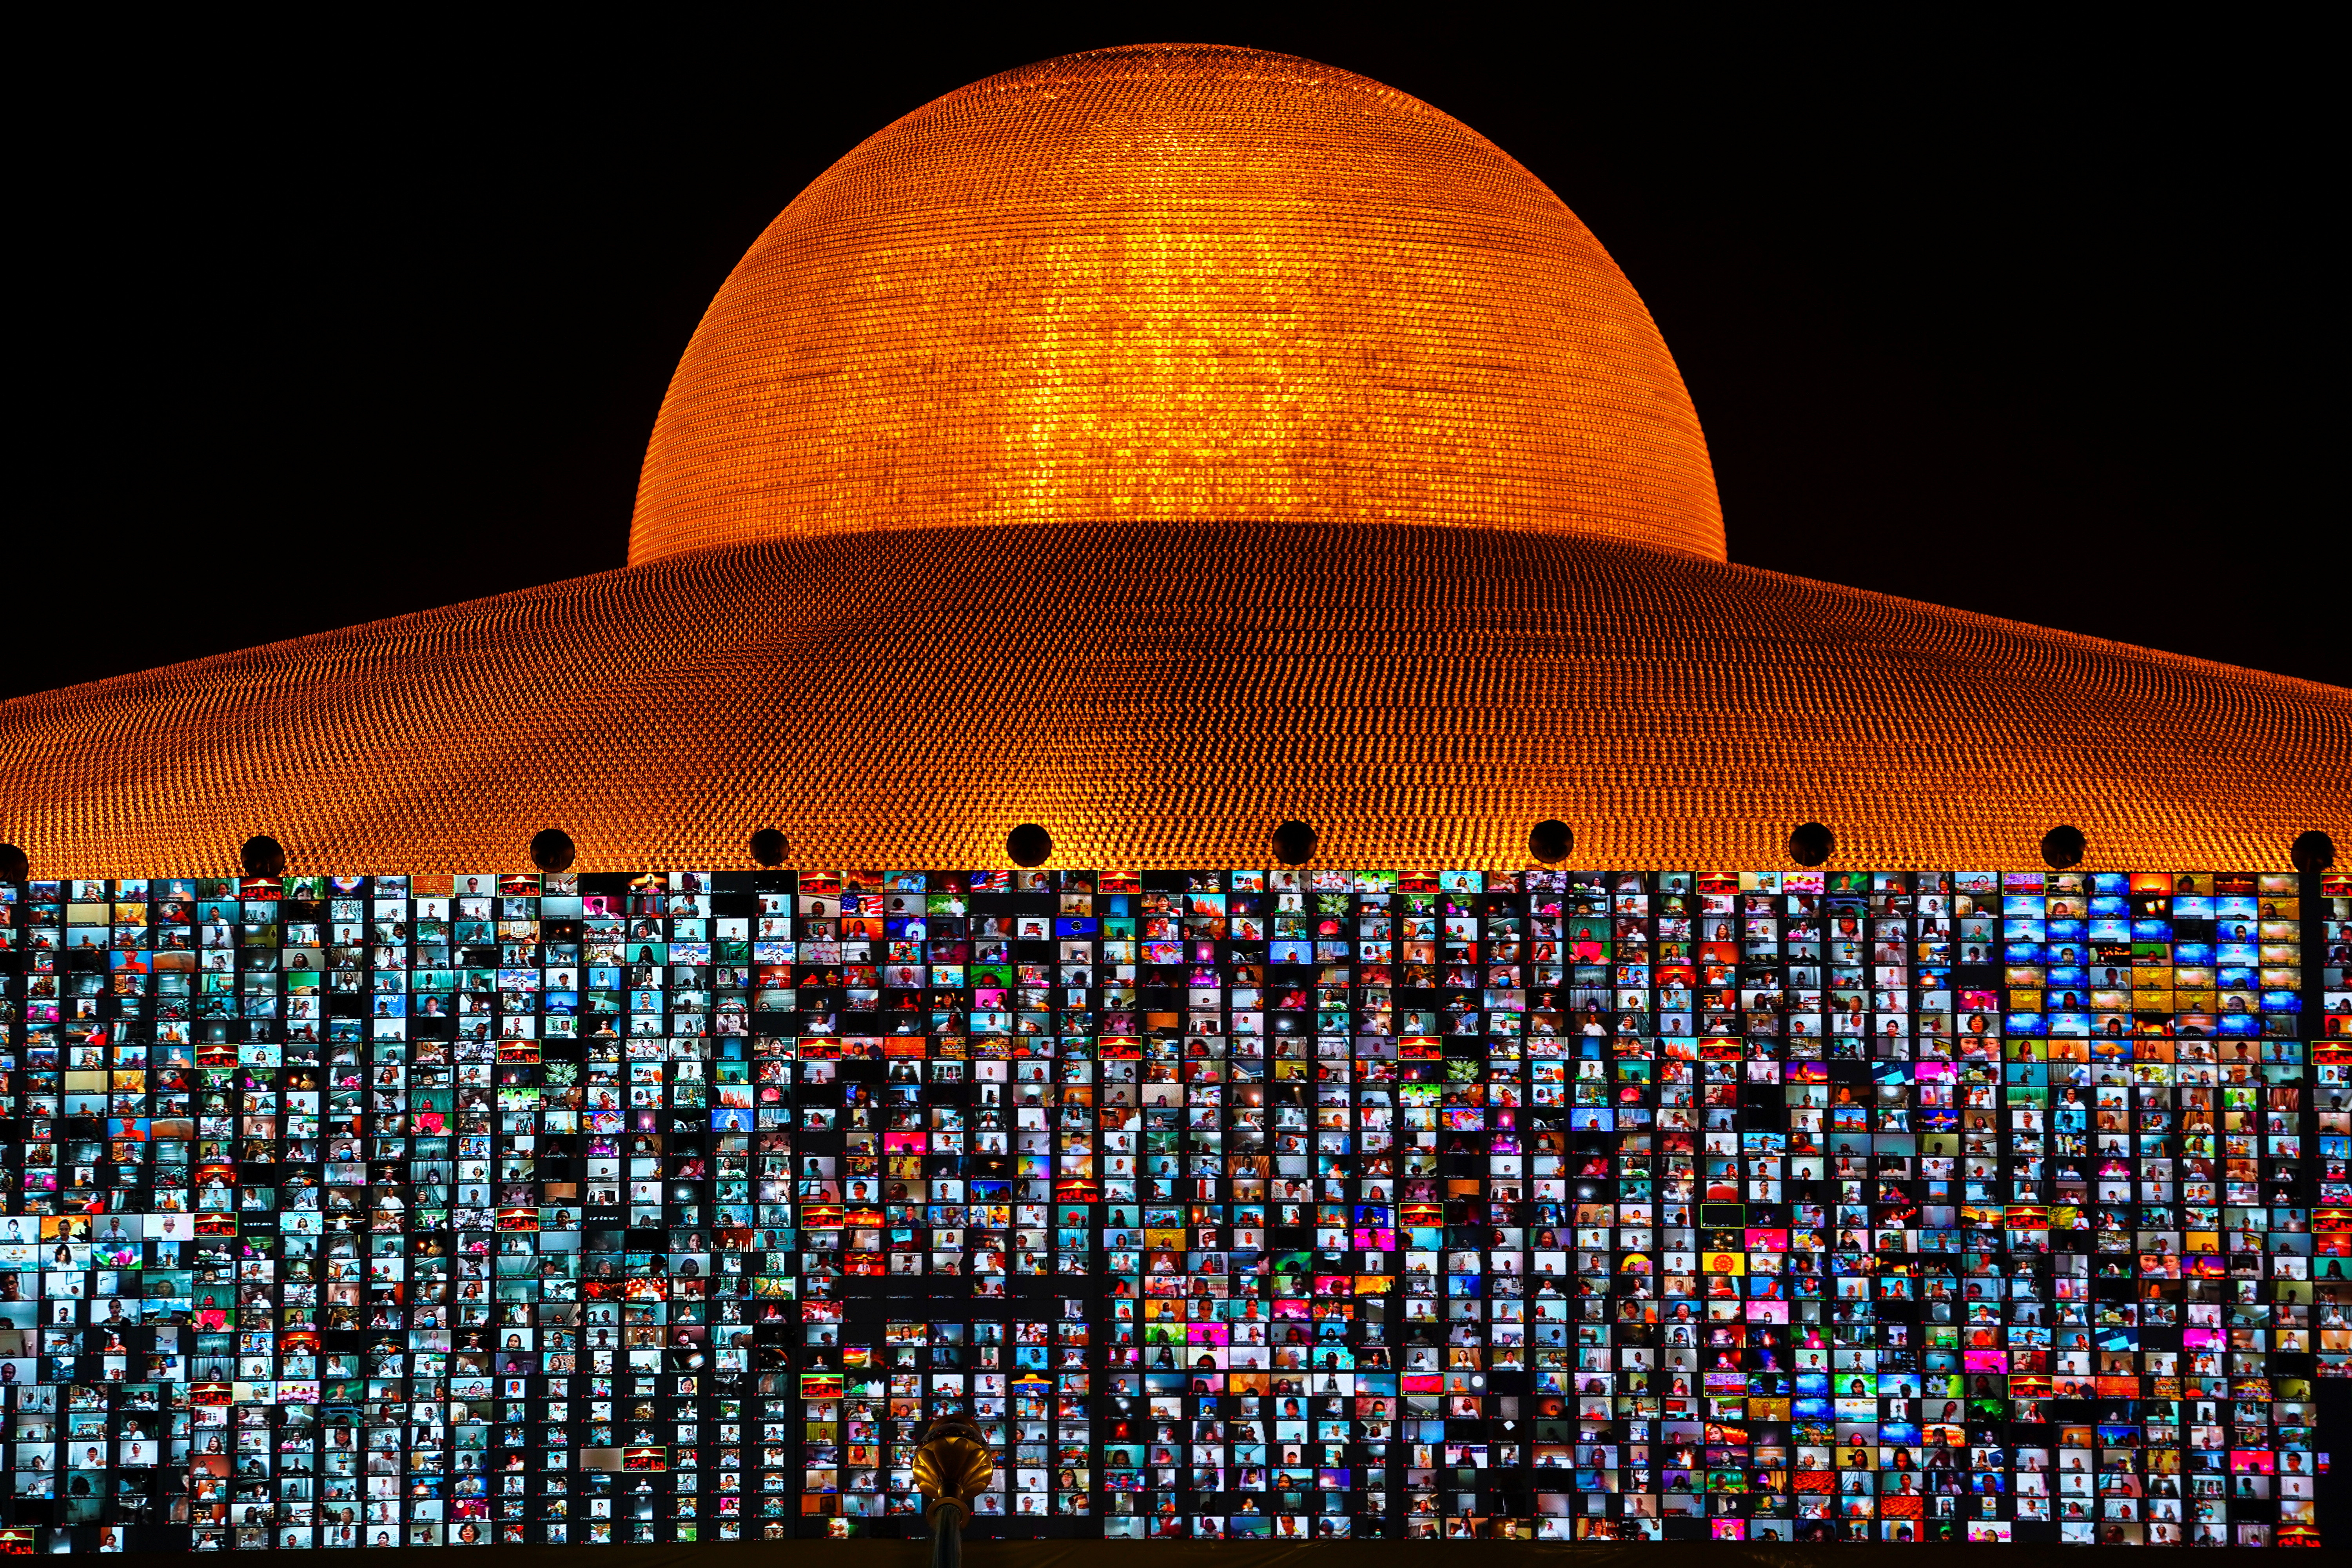 Screens show devotees gathering via the Zoom application during Vesak Day, an annual celebration of Buddha's birth, enlightenment, and death at the Dhammakaya temple amid the coronavirus disease (COVID-19) pandemic in Pathum Thani province, Thailand, May 26, 2021. REUTERS/Athit Perawongmetha - RC2ONN97XM0J